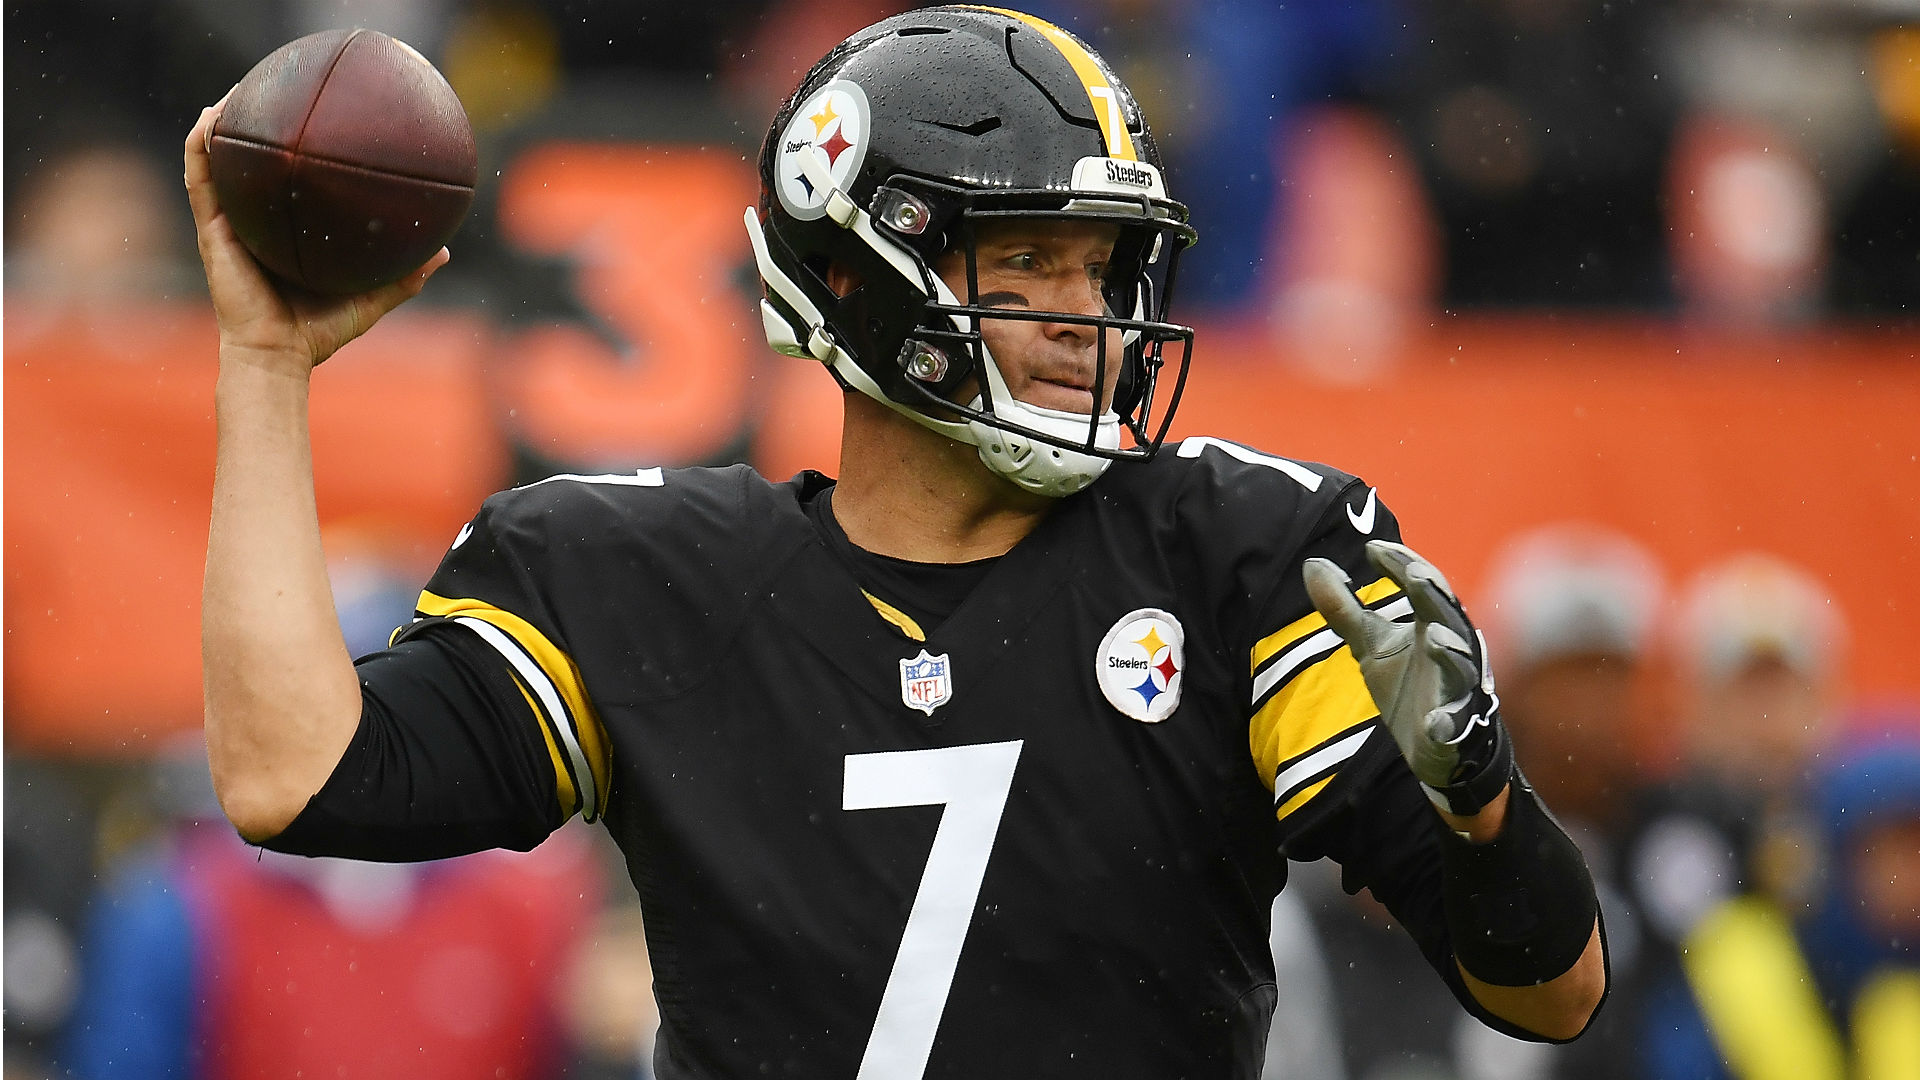 Ben Roethlisberger injury update: Steelers QB full participant in practice